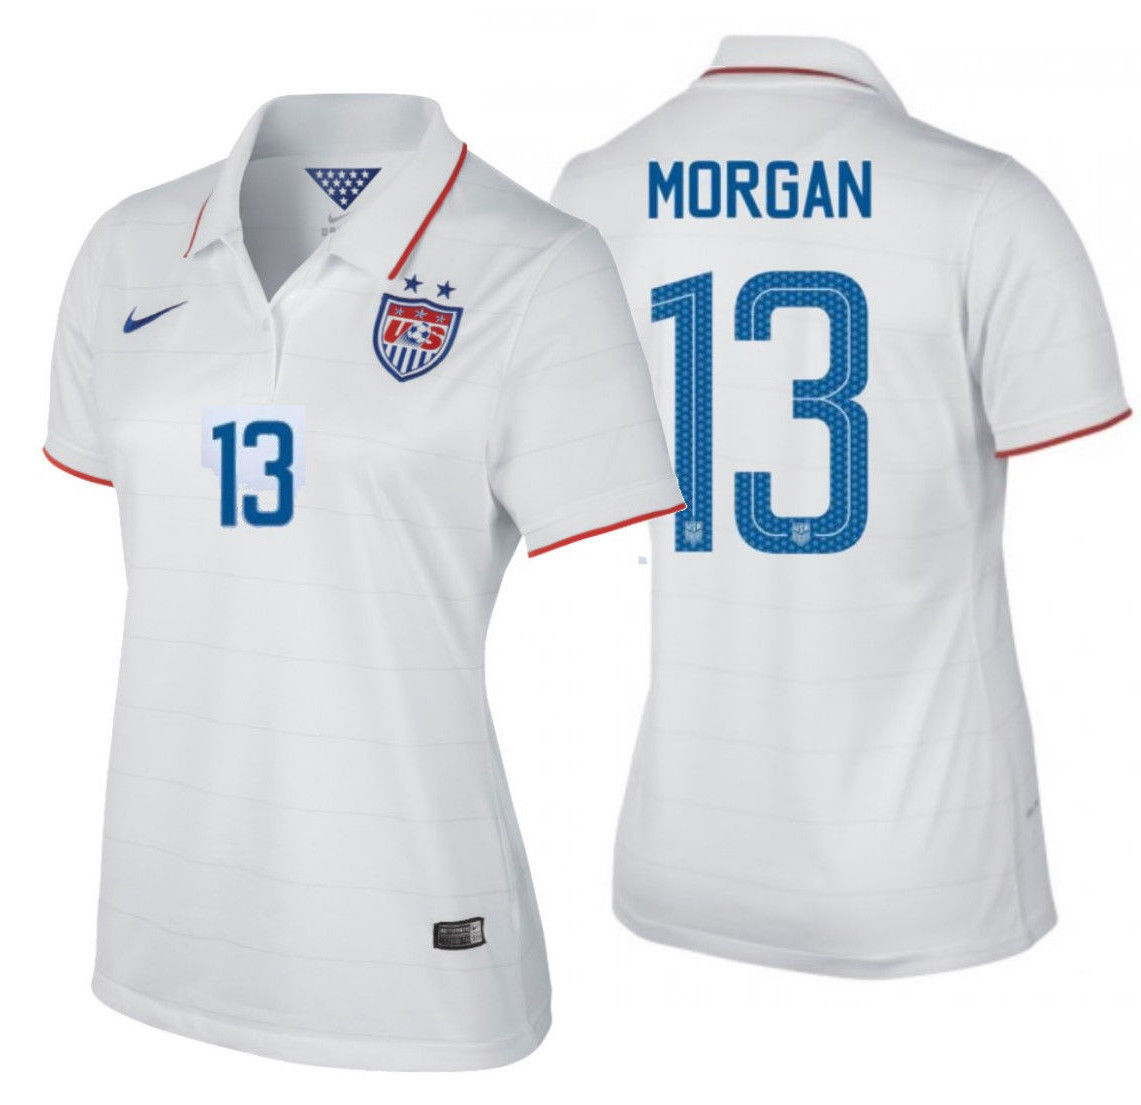 37ee7a9a254 S l16001. S l16001. Previous. NIKE ALEX MORGAN USA WOMEN S HOME JERSEY  USWNT FIFA WORLD CUP 2014. NIKE ALEX ...